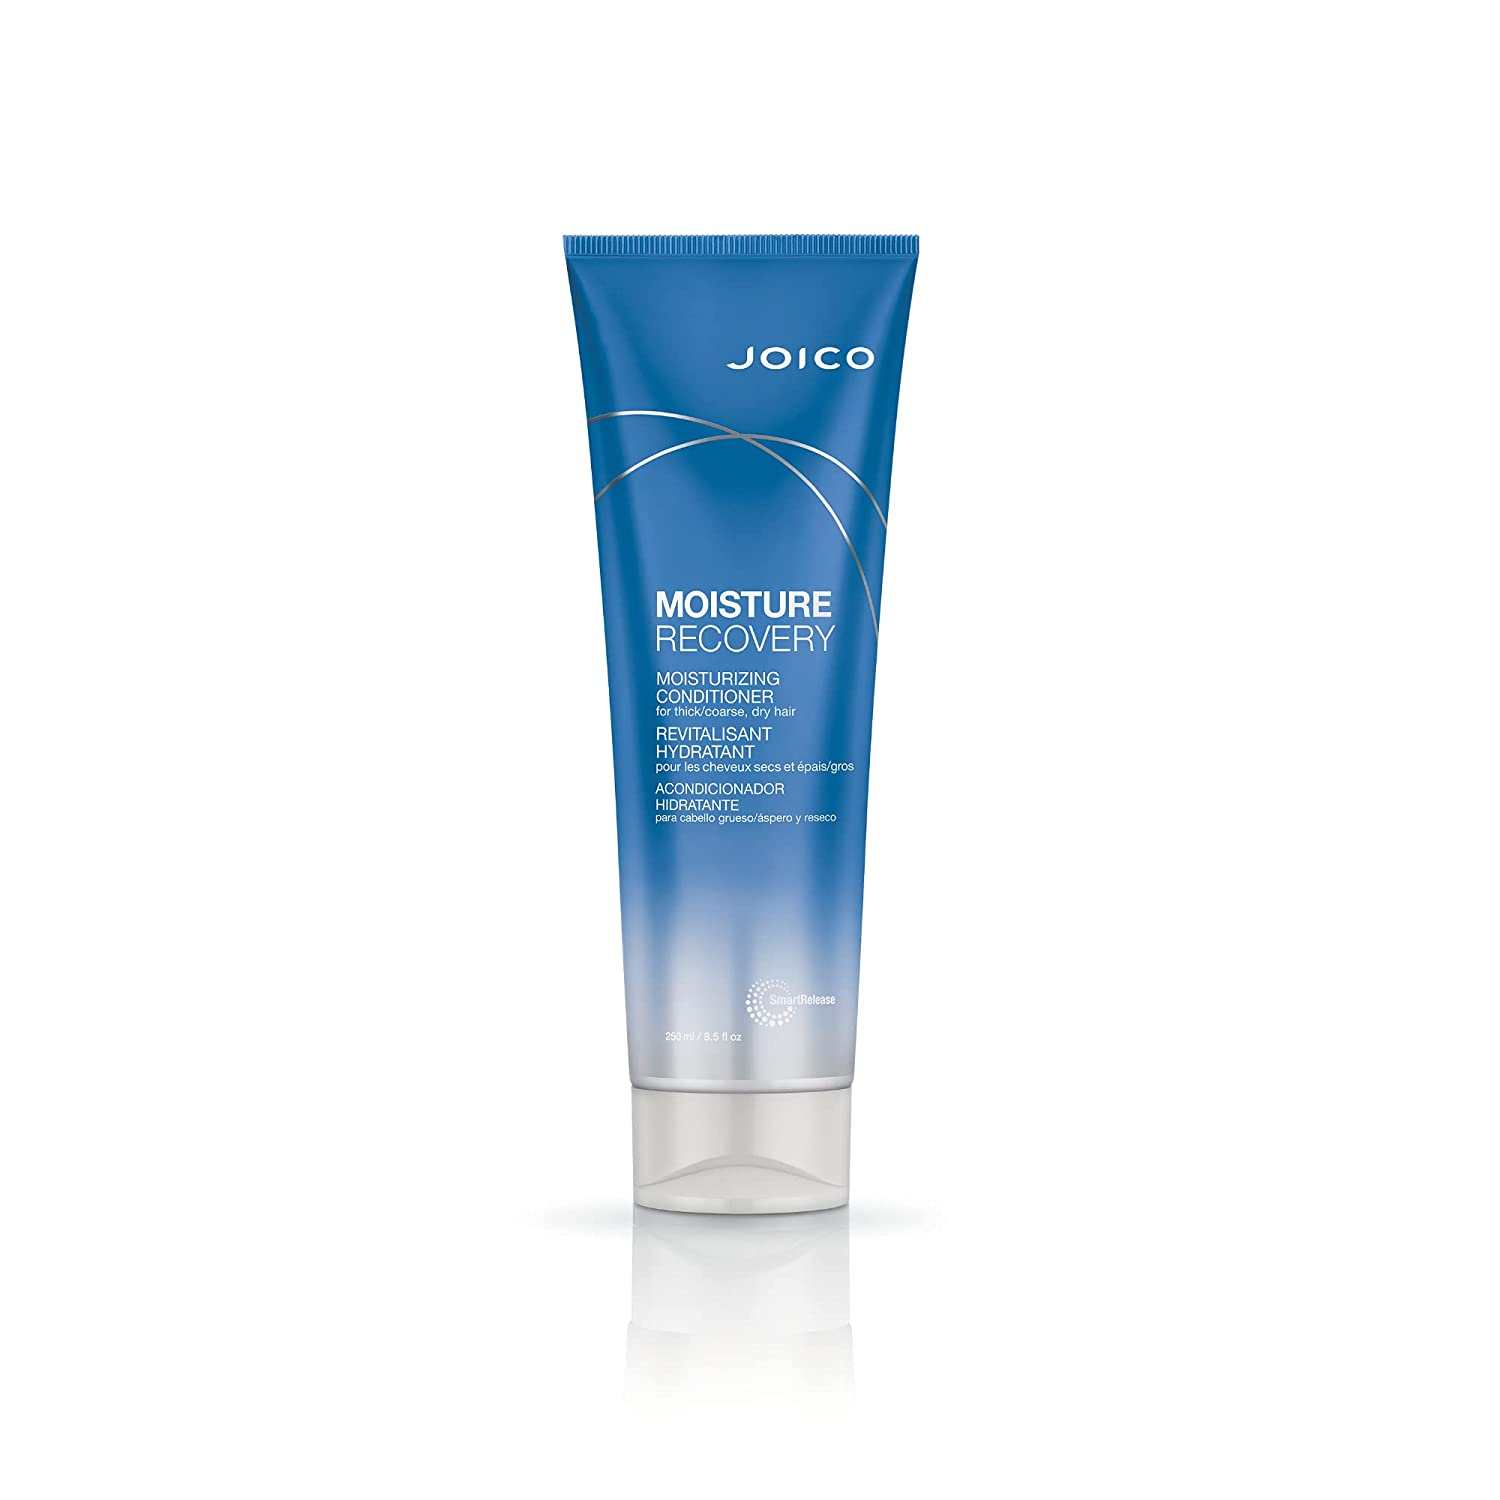 Joico Moisture Recovery Hair Conditioners for dry hair